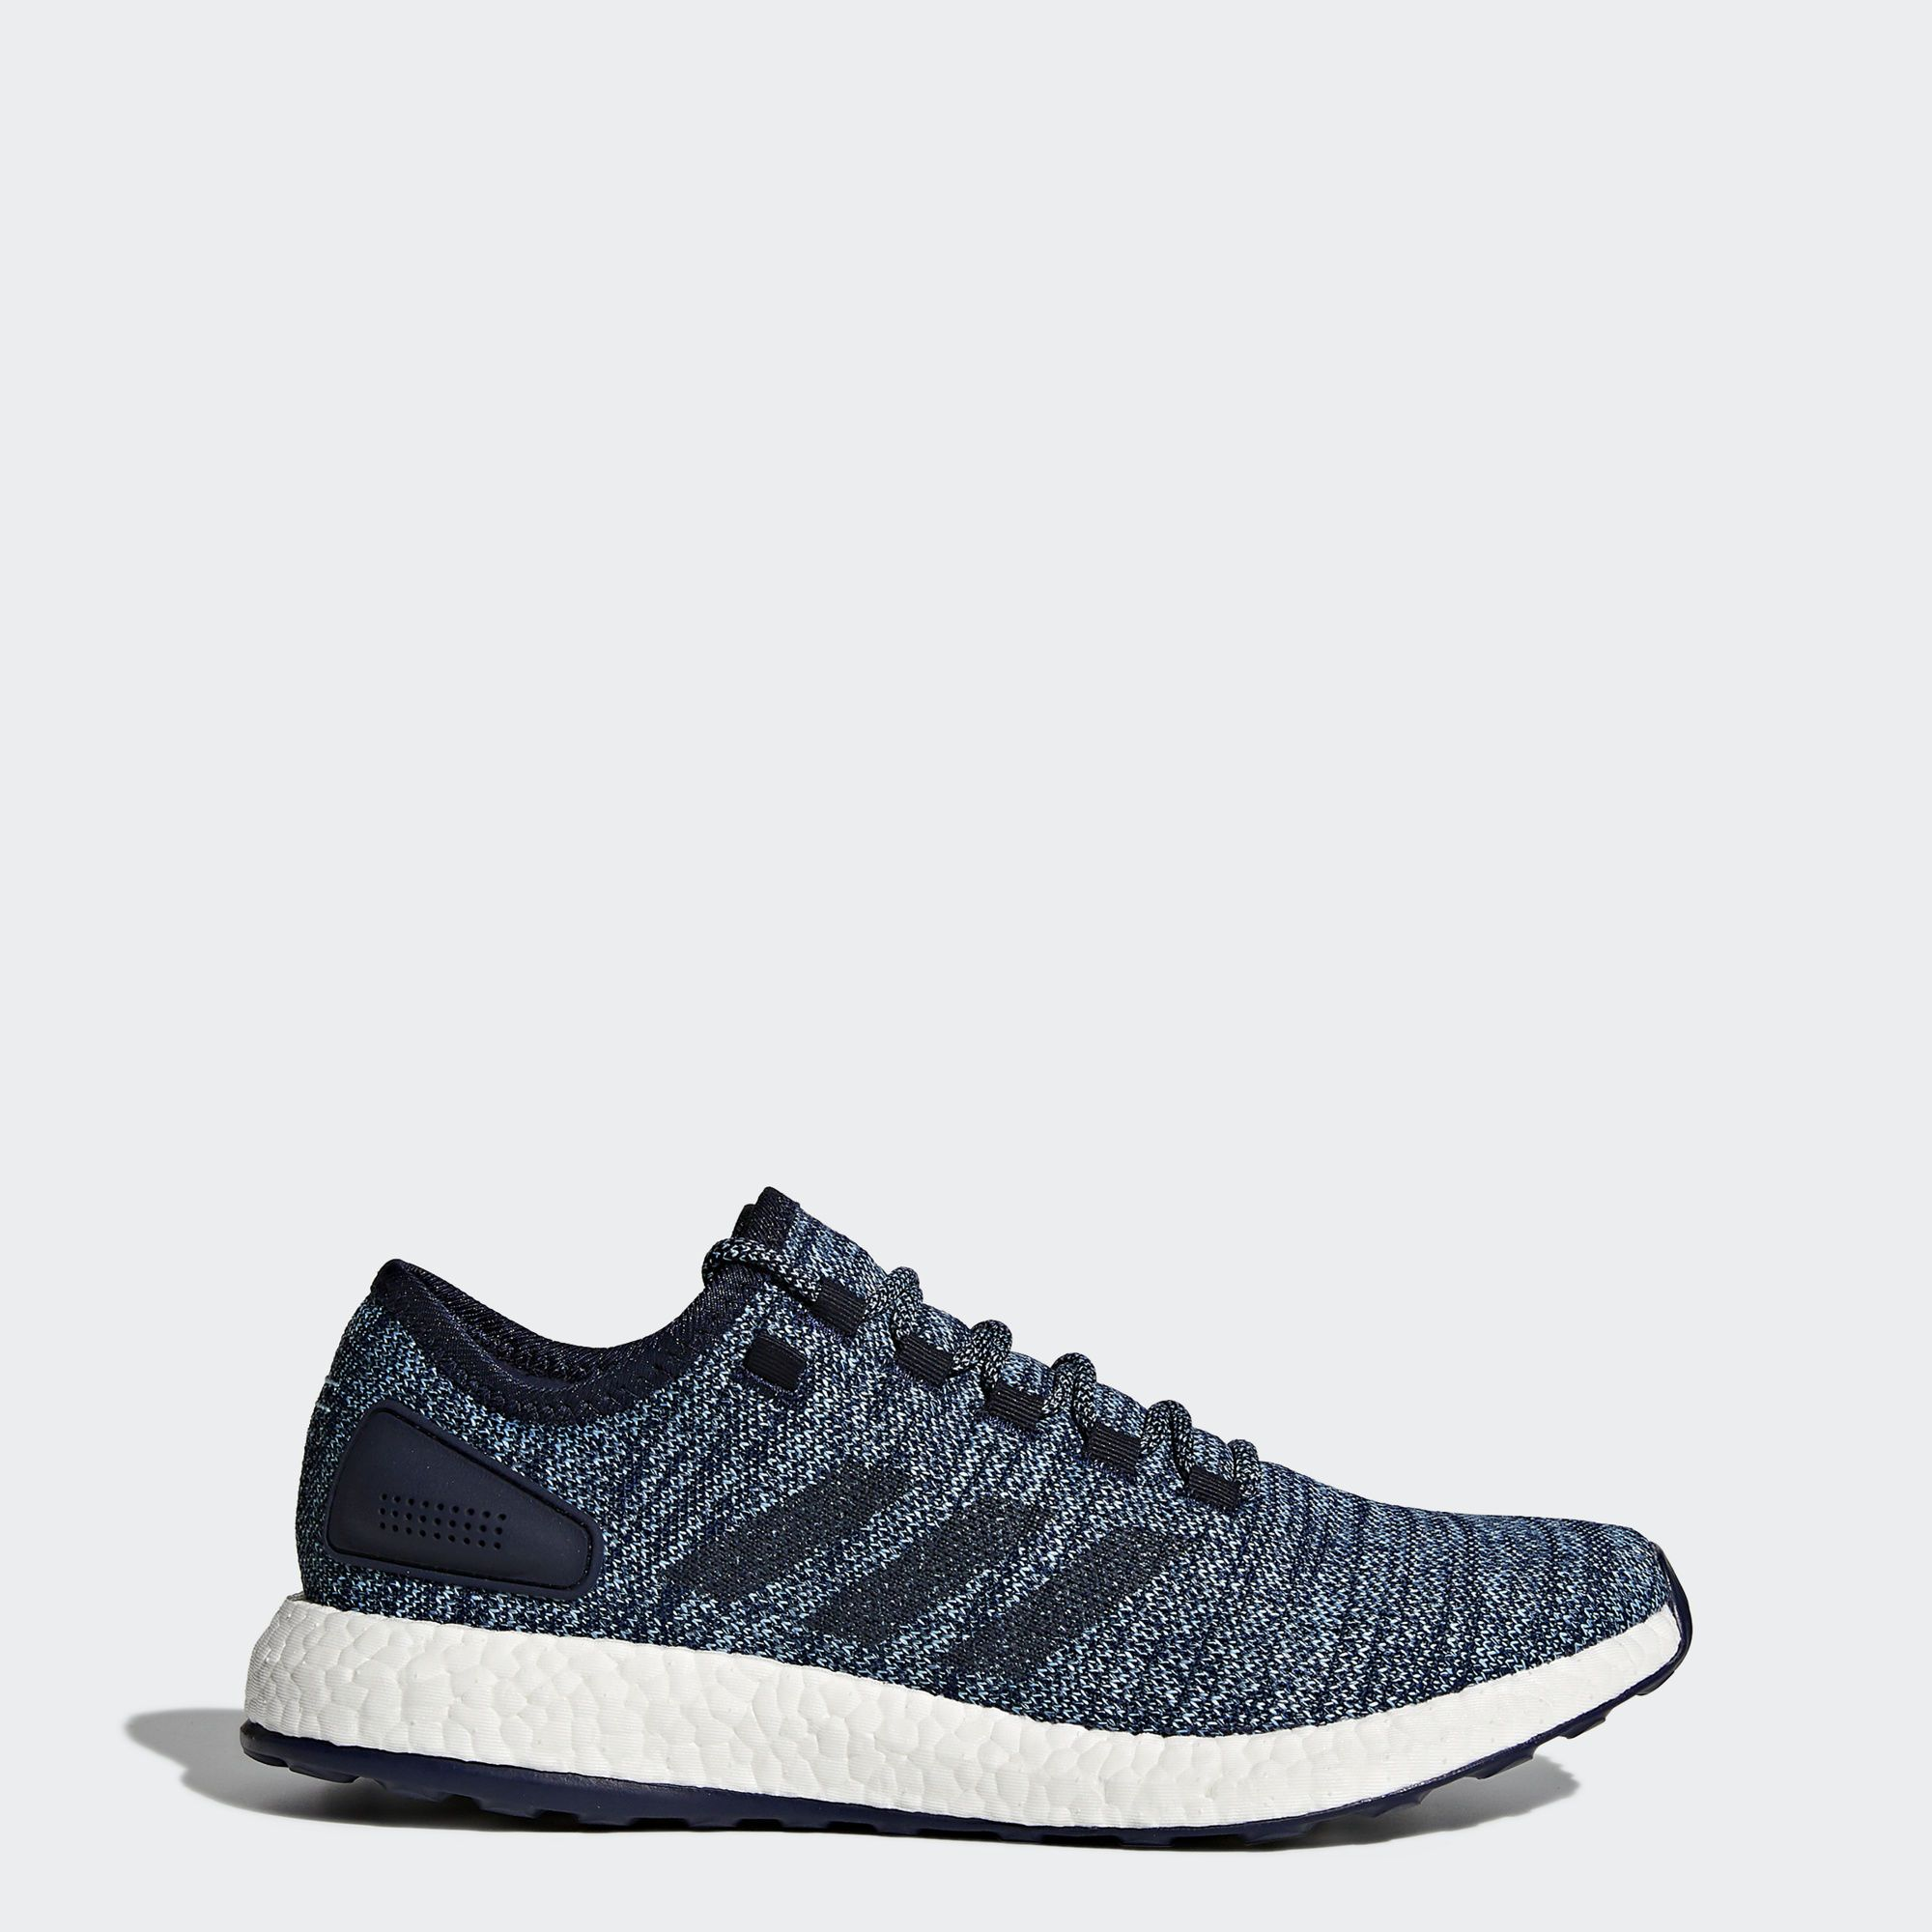 timeless design 21517 f7ce9 Shop the PureBOOST All Terrain Shoes - Blue at adidas.comus! See all the  styles and colors of PureBOOST All Terrain Shoes - Blue at the official  adidas ...